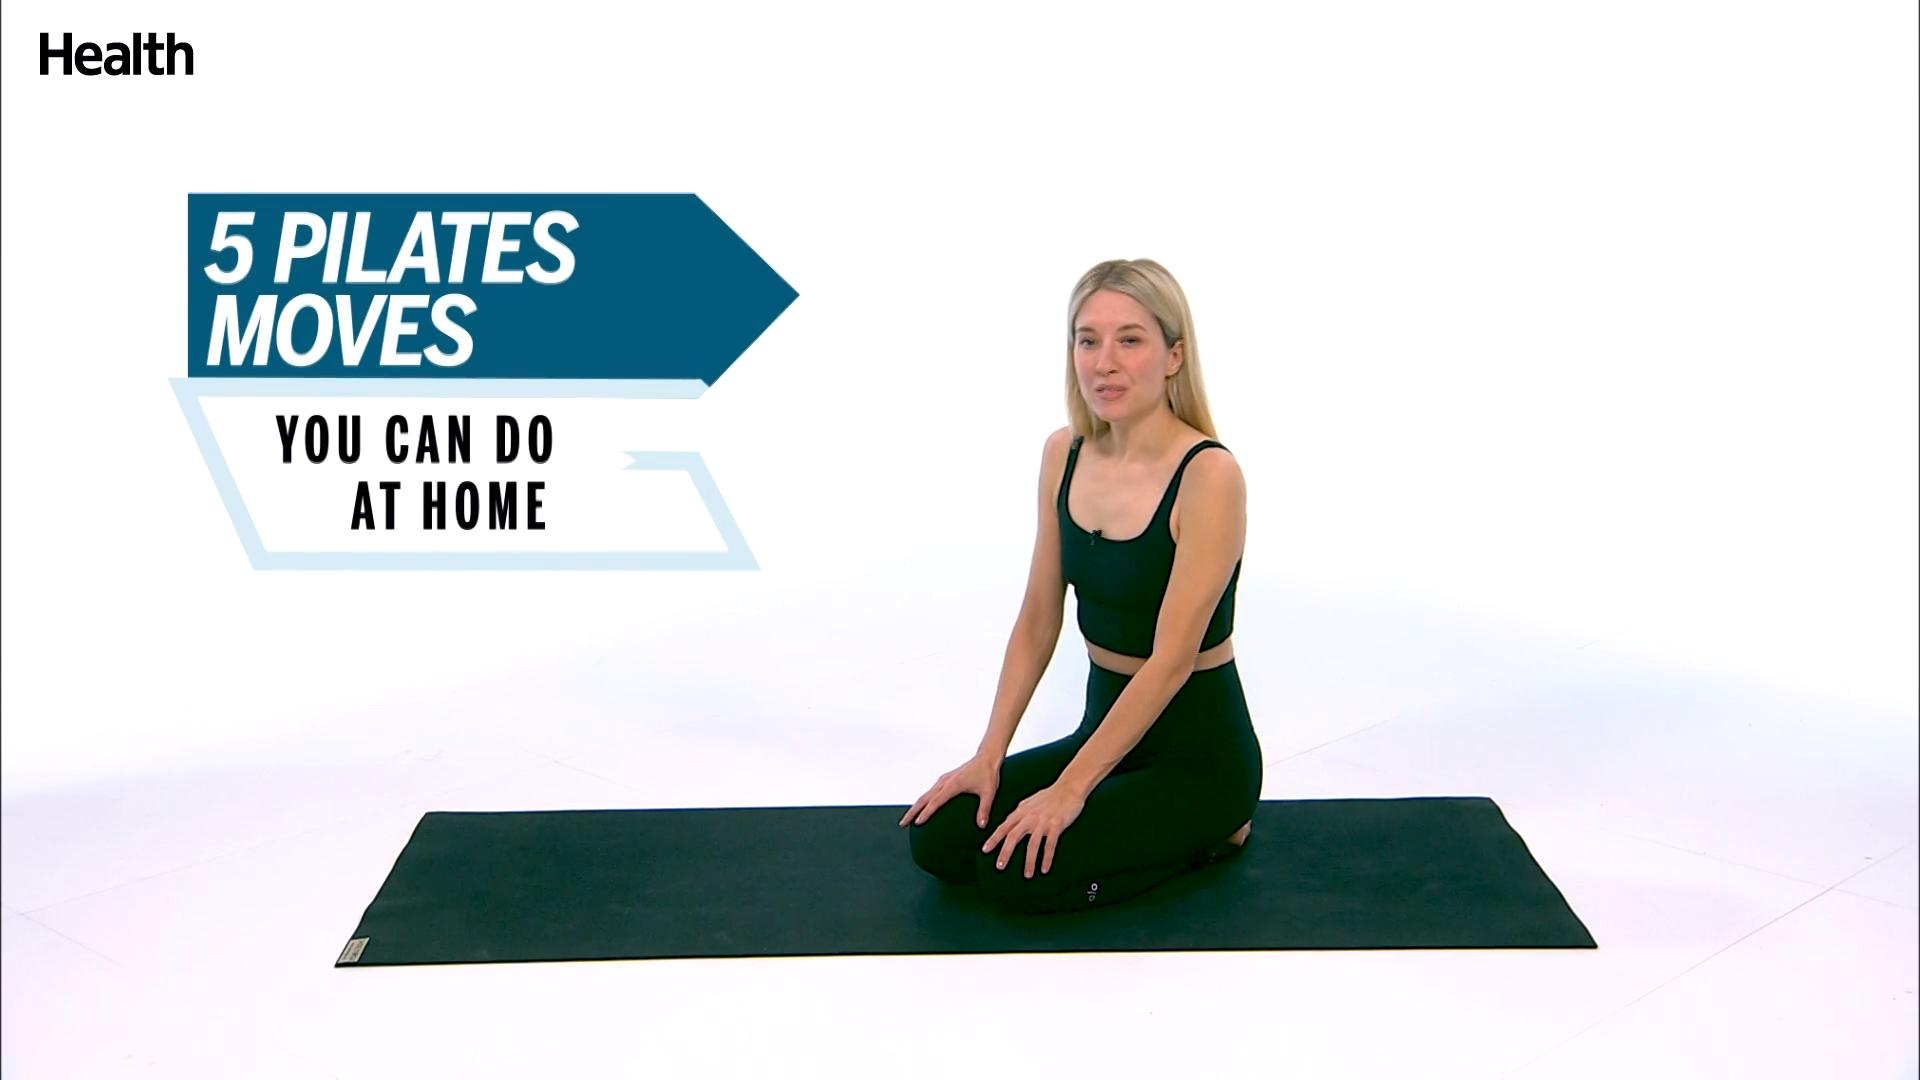 Karen Lord Demonstrates 5 Pilates Exercises You Can Do at Home